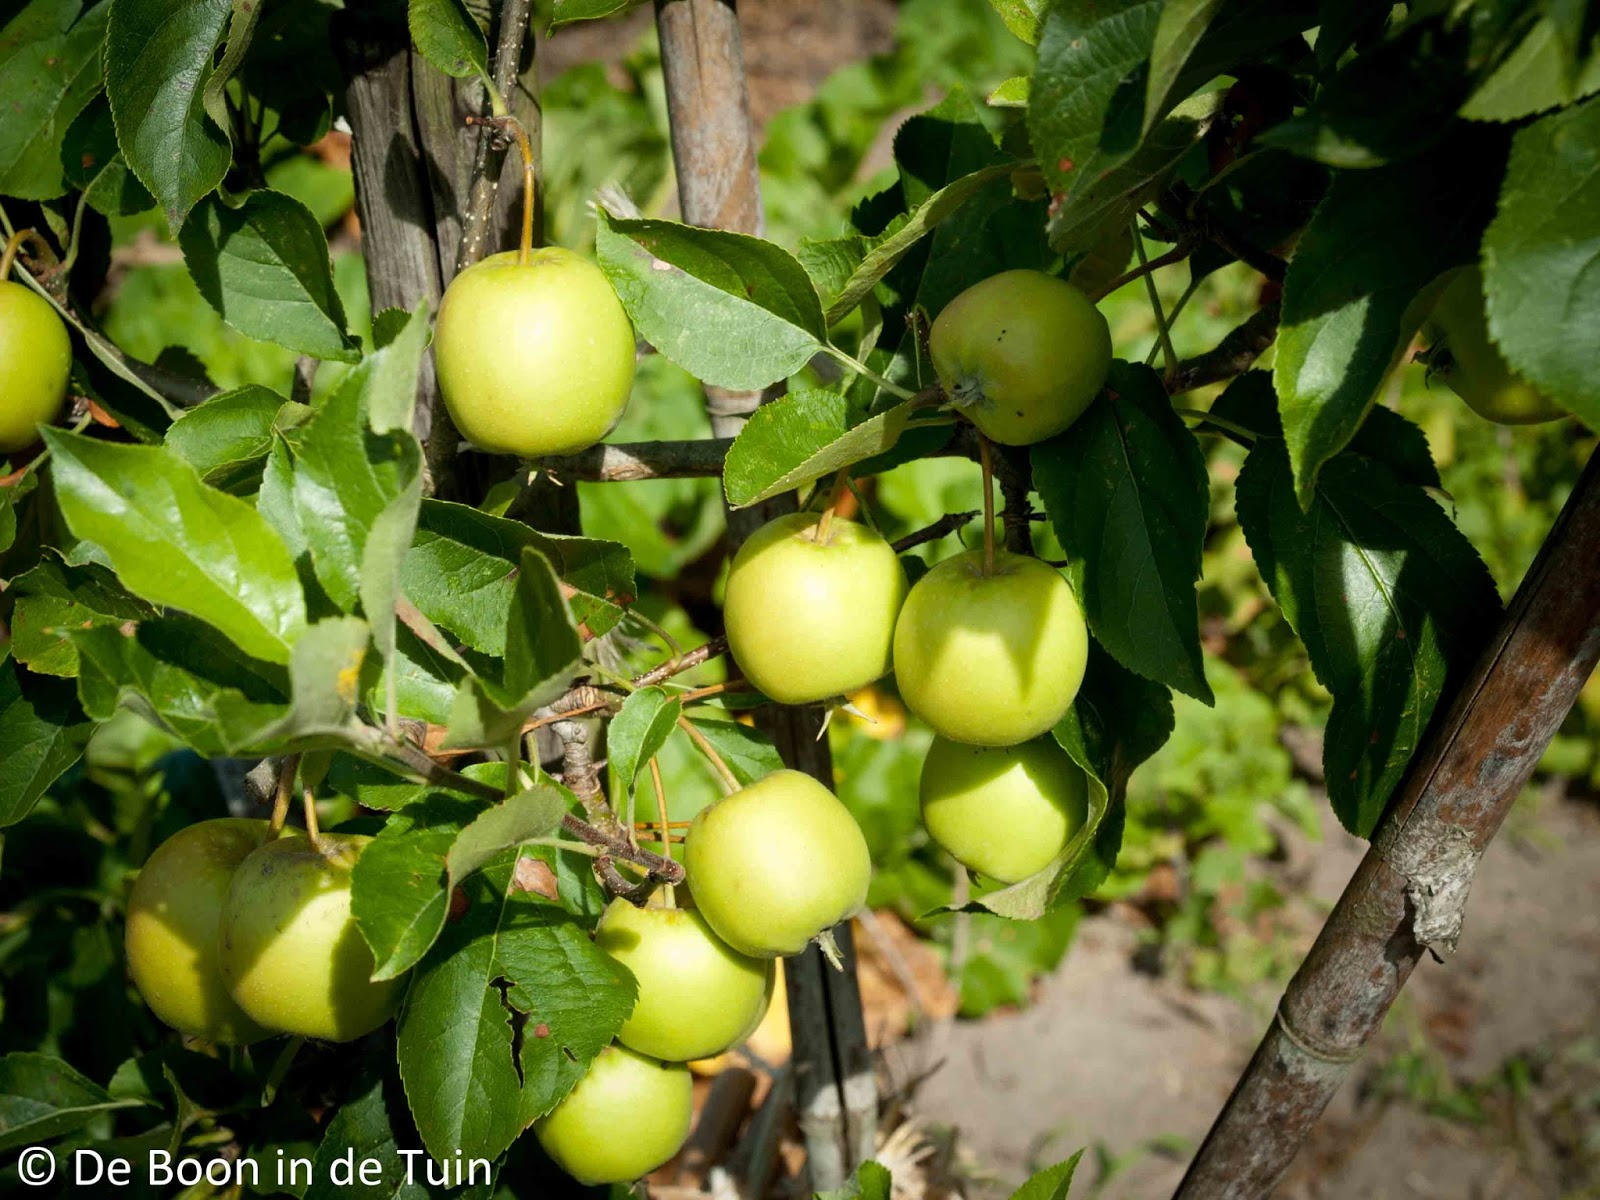 appel golden delicious moestuin volkstuin